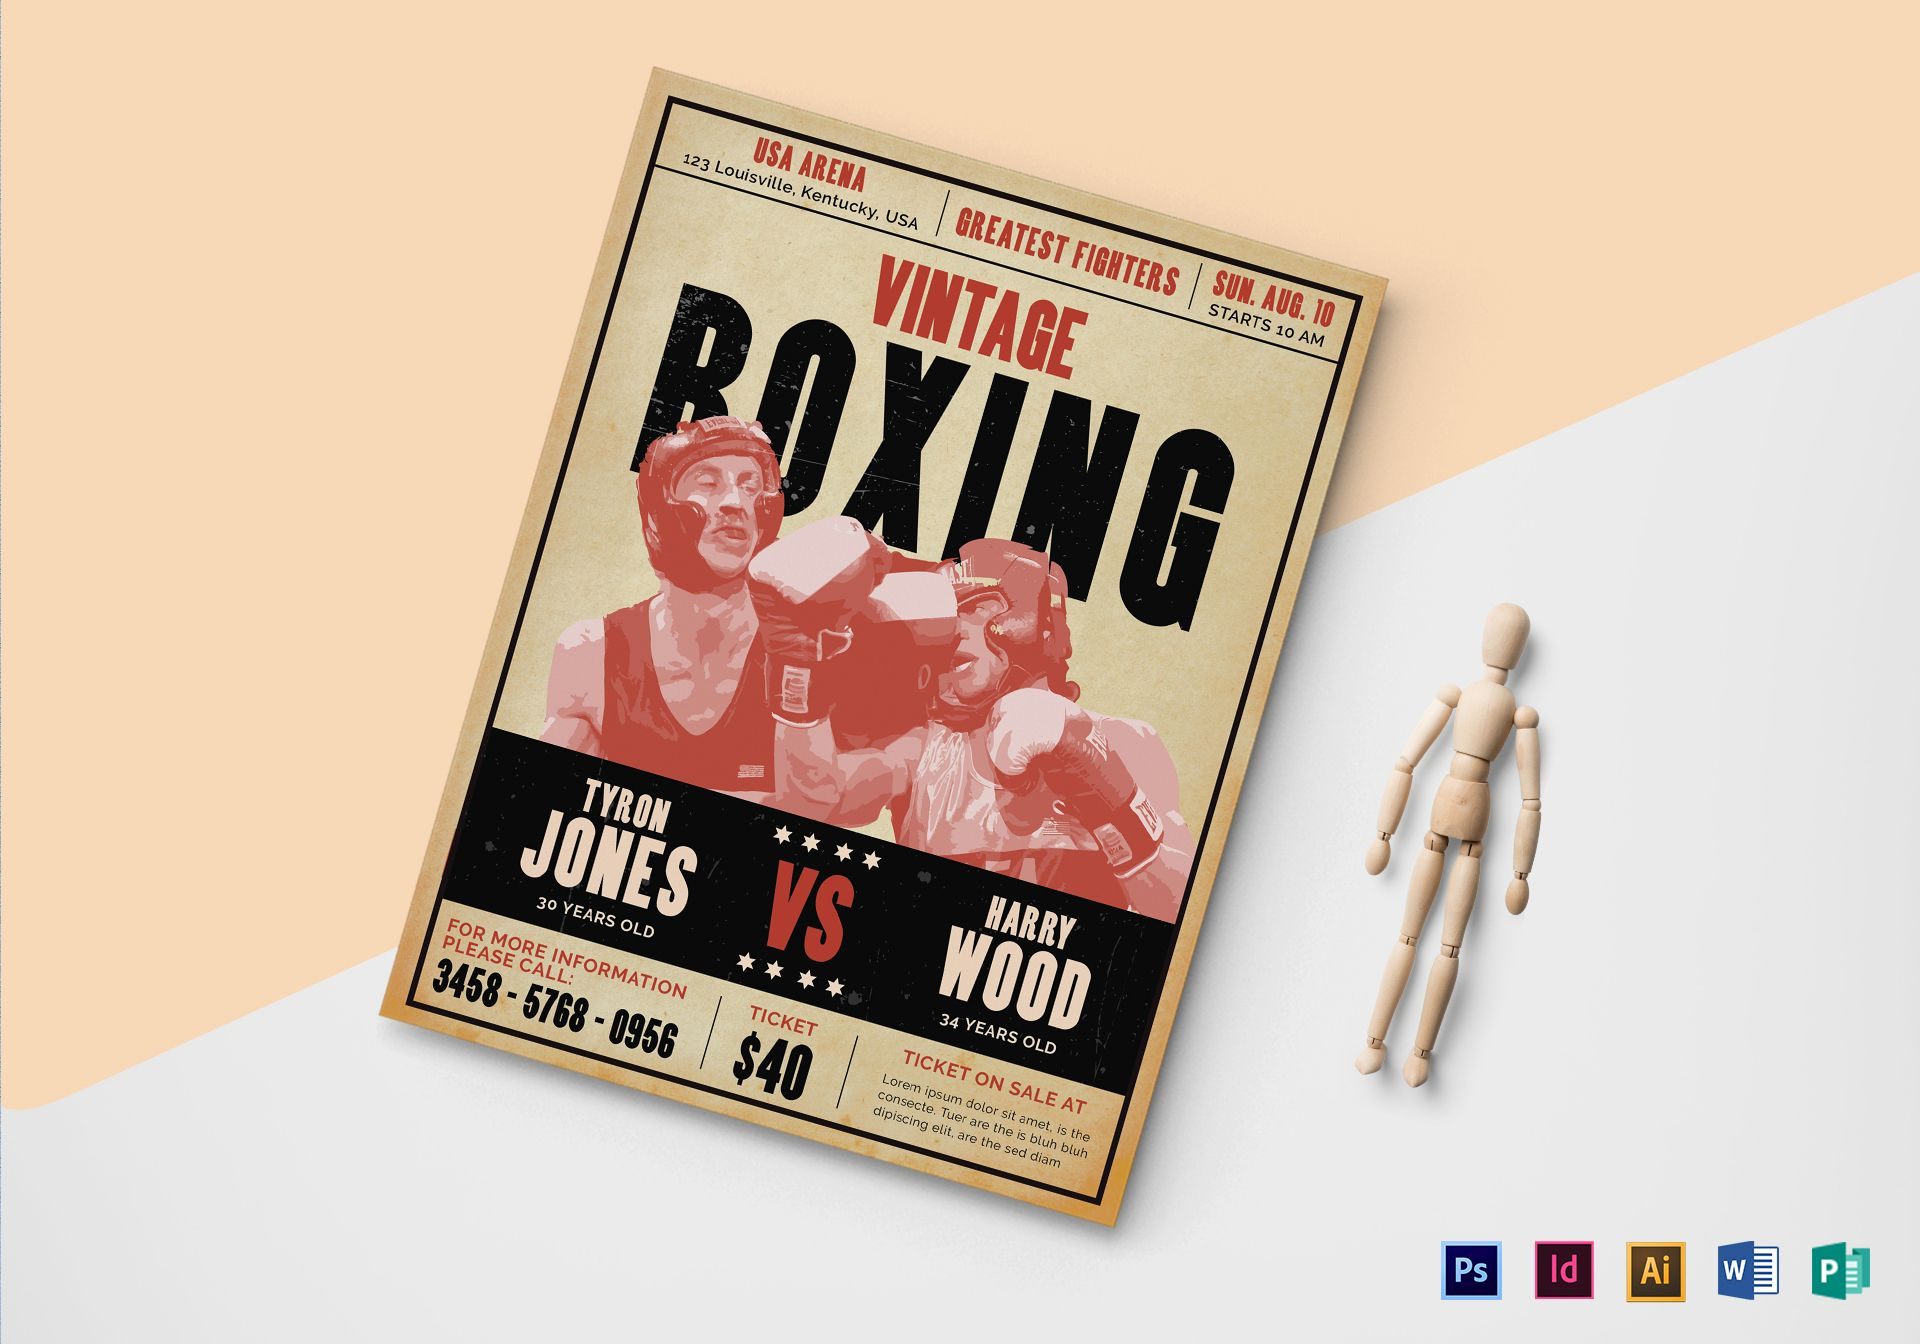 Vintage Boxing Flyer